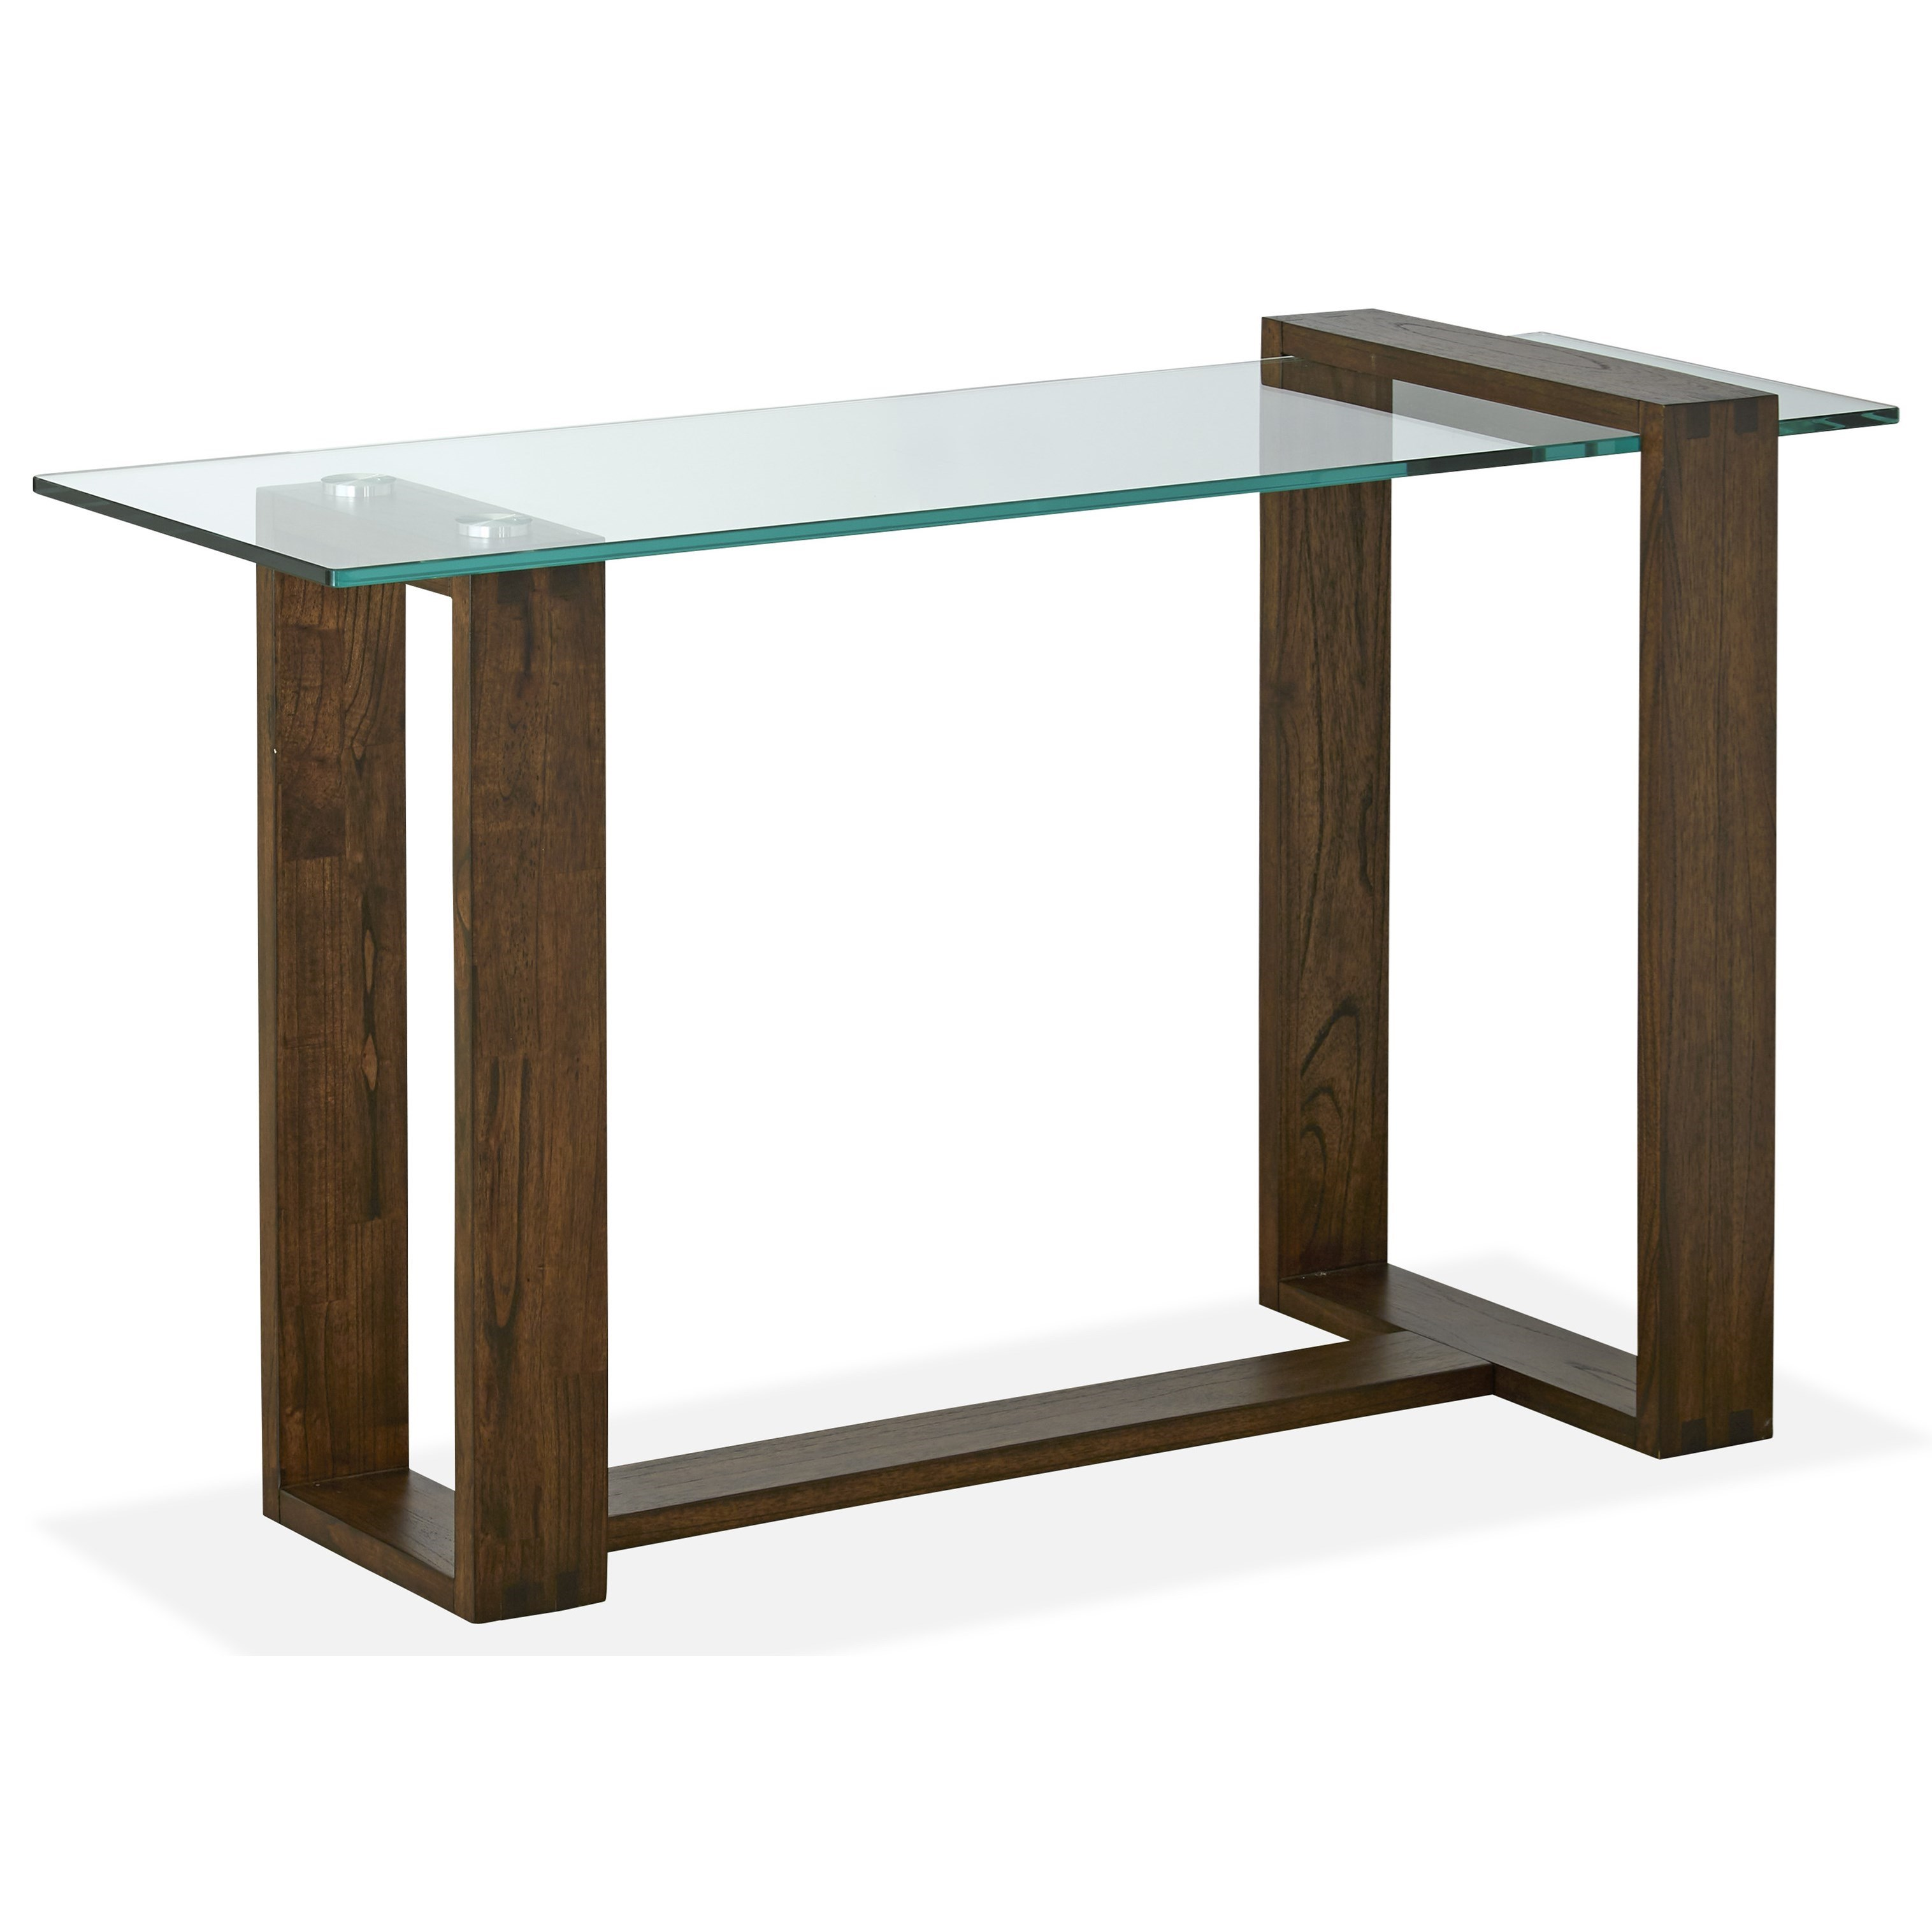 Bristow Rectangular Sofa Table by Magnussen Home at Darvin Furniture